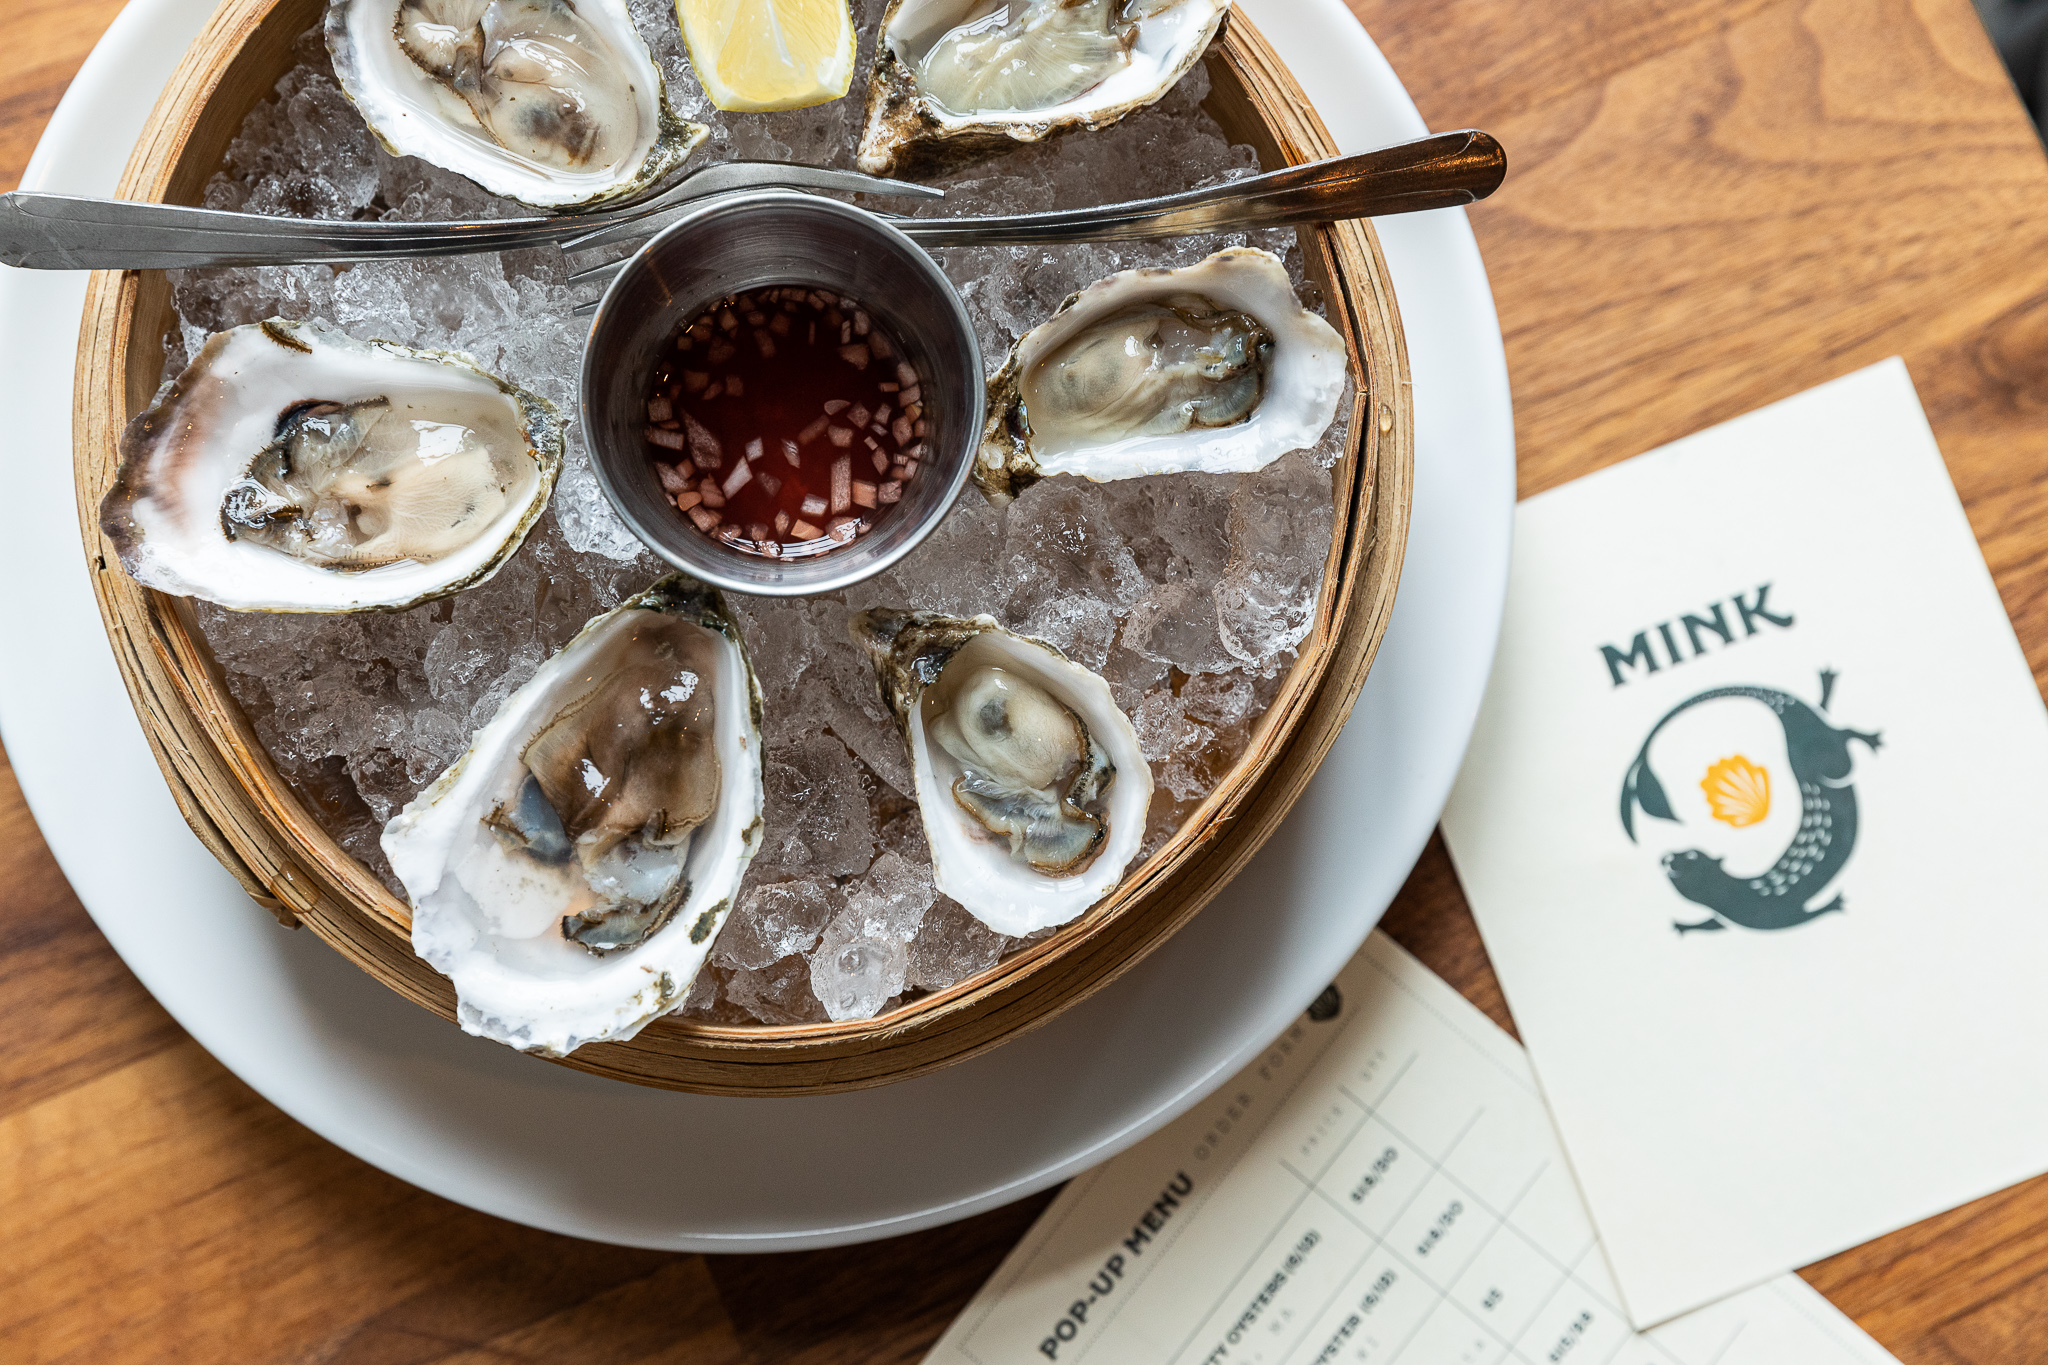 A tray of oysters on ice next to a menu for Mink.